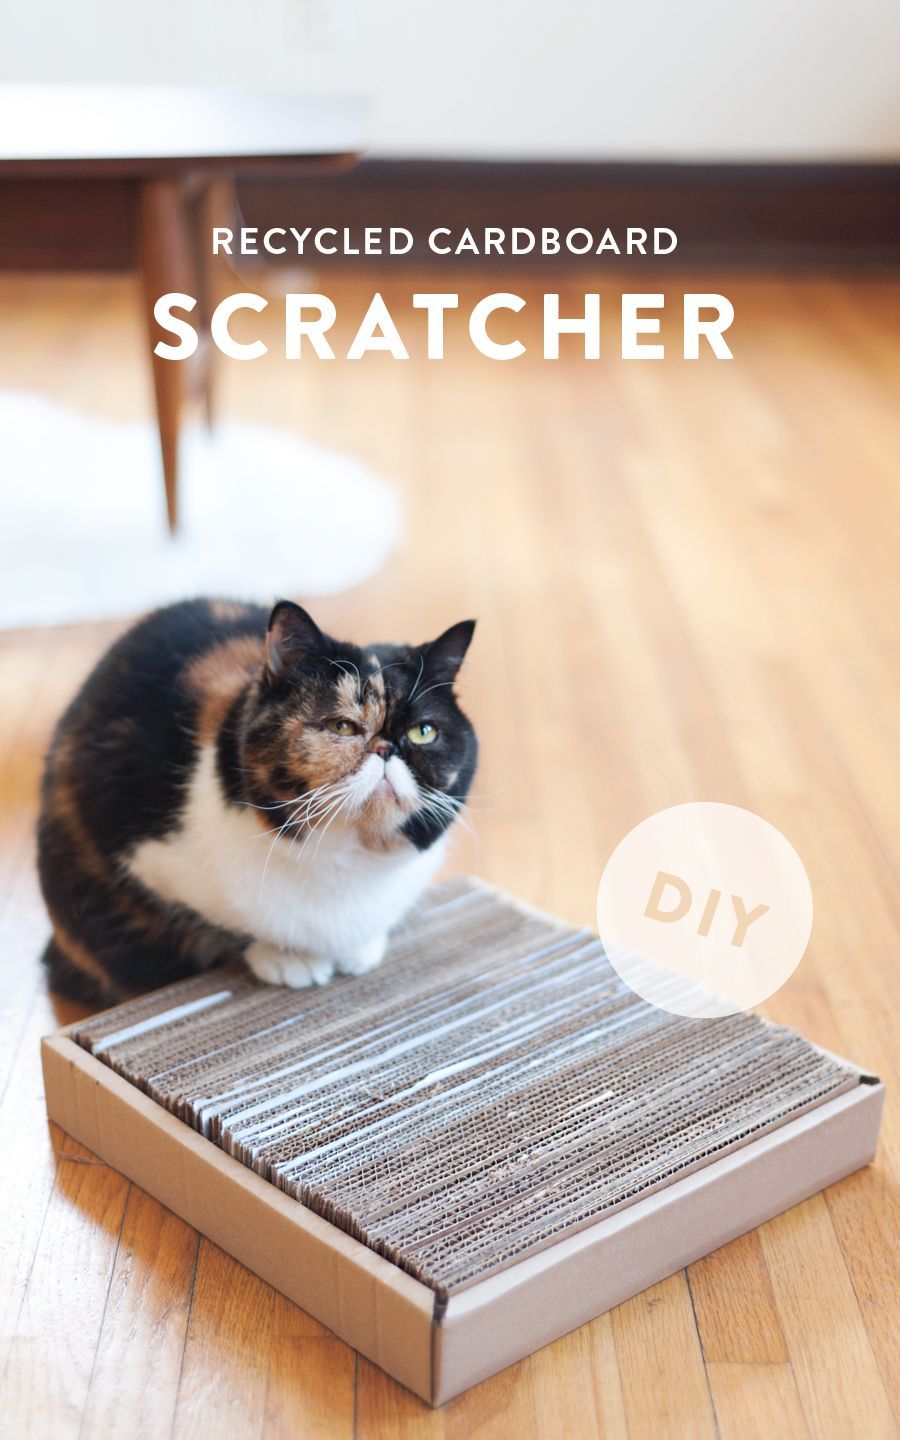 die besten 25 cardboard cat scratcher ideen auf pinterest katzen kratzer wellpappschachteln. Black Bedroom Furniture Sets. Home Design Ideas